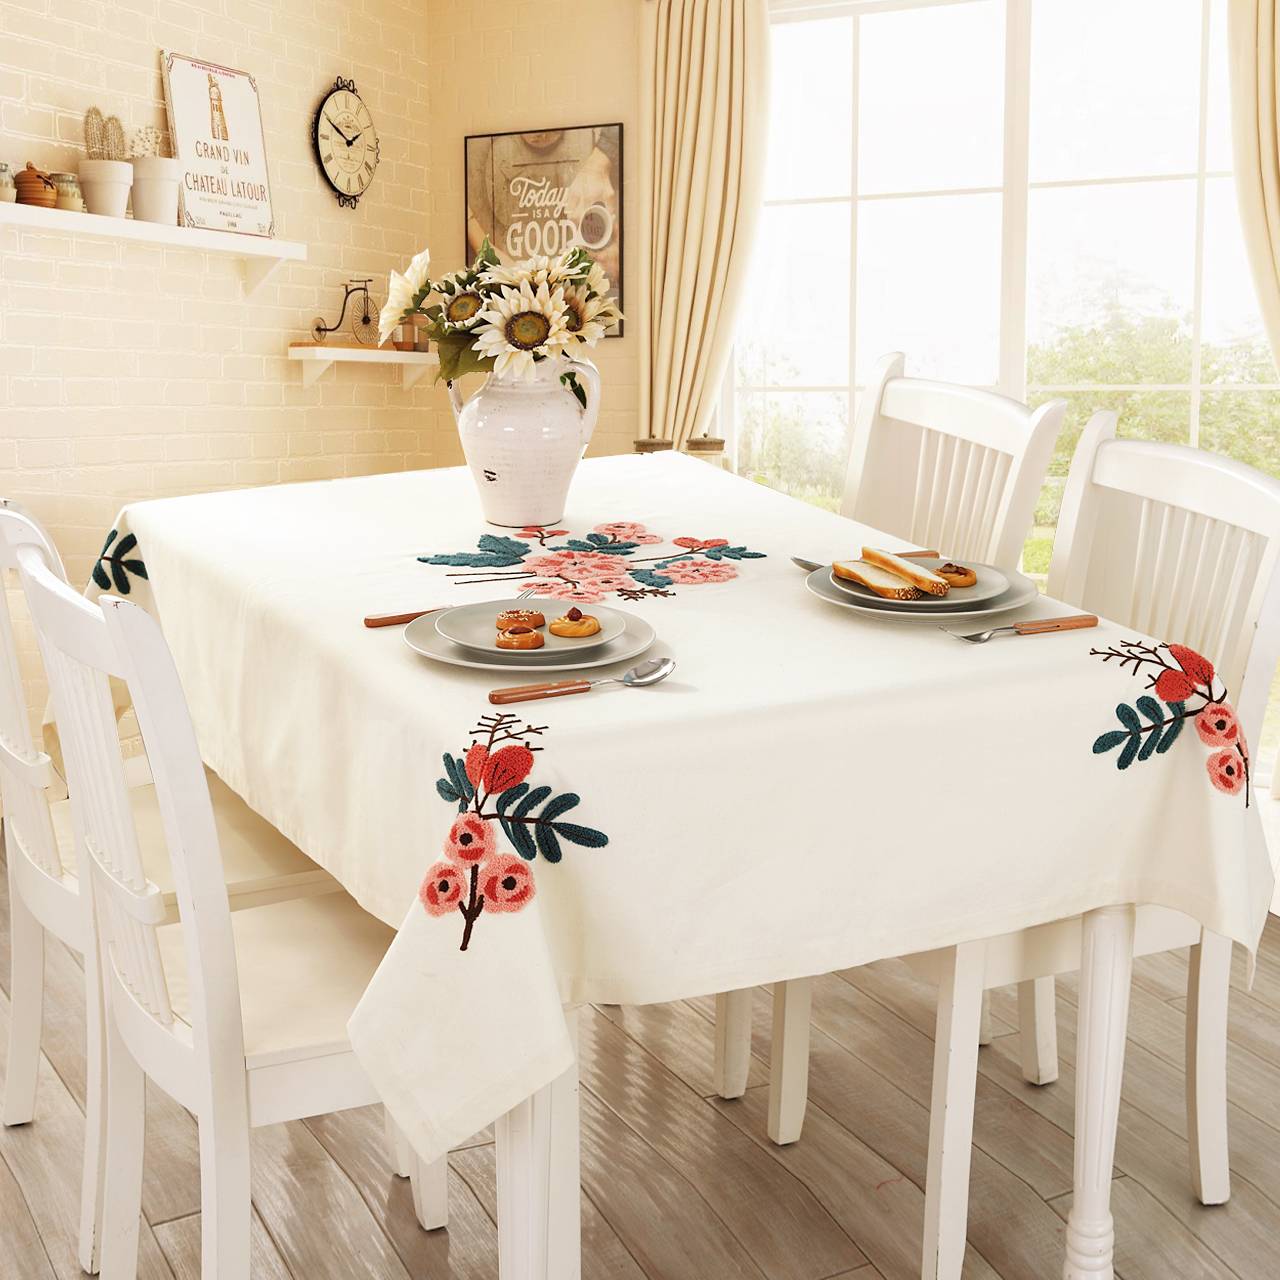 Get Quotations Contadino Embroidery Lu Embroidered Linen Tablecloth Round Coffee Table Cloth Square Dining